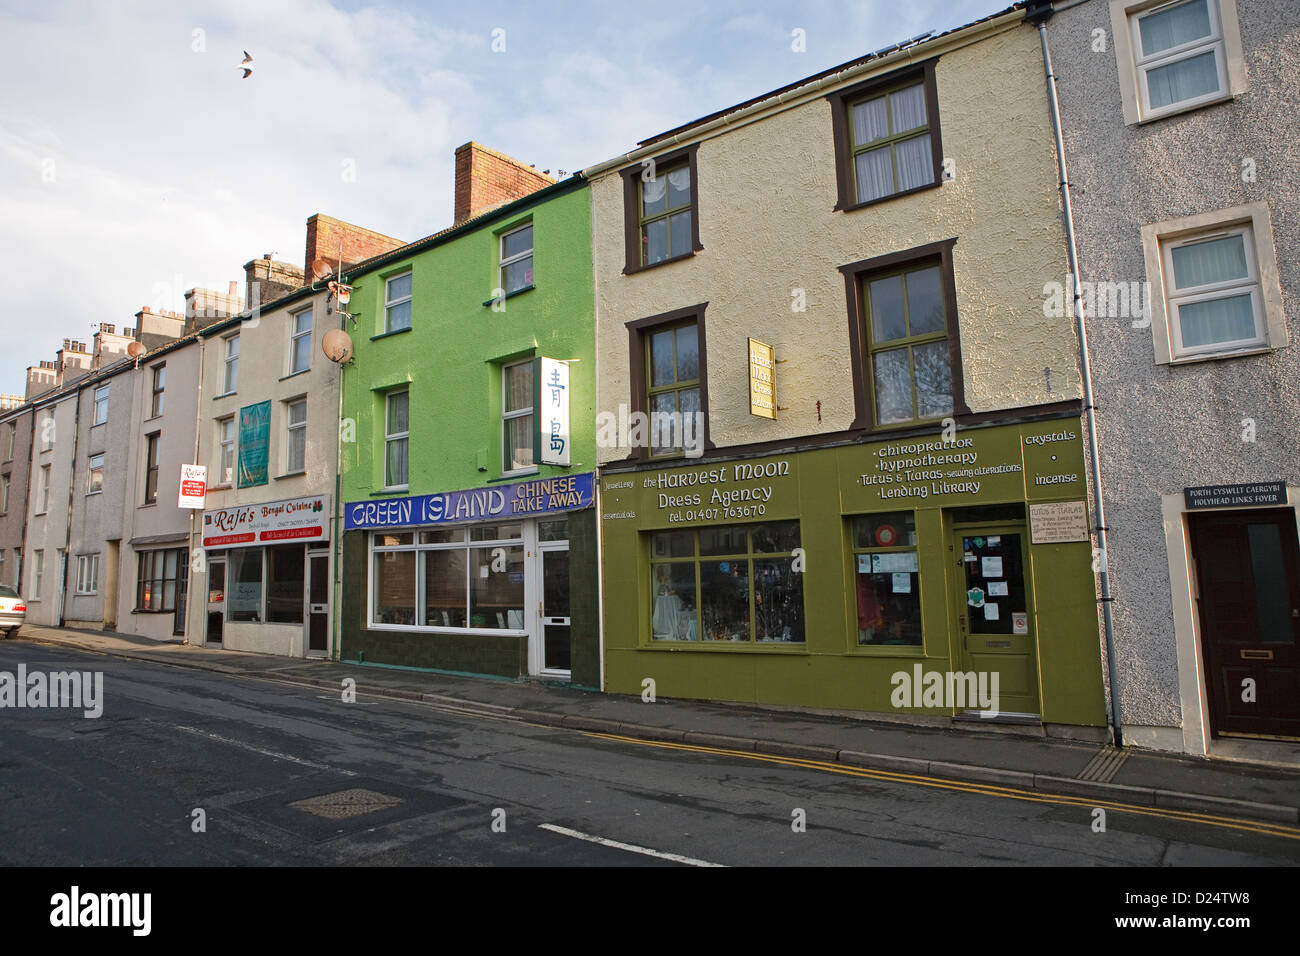 The dress agency - Harvest Moon Dress Agency Green Island Chinese Takeaway And Rajas Bengal Cuisine In Newry Street In Holyhead Wales